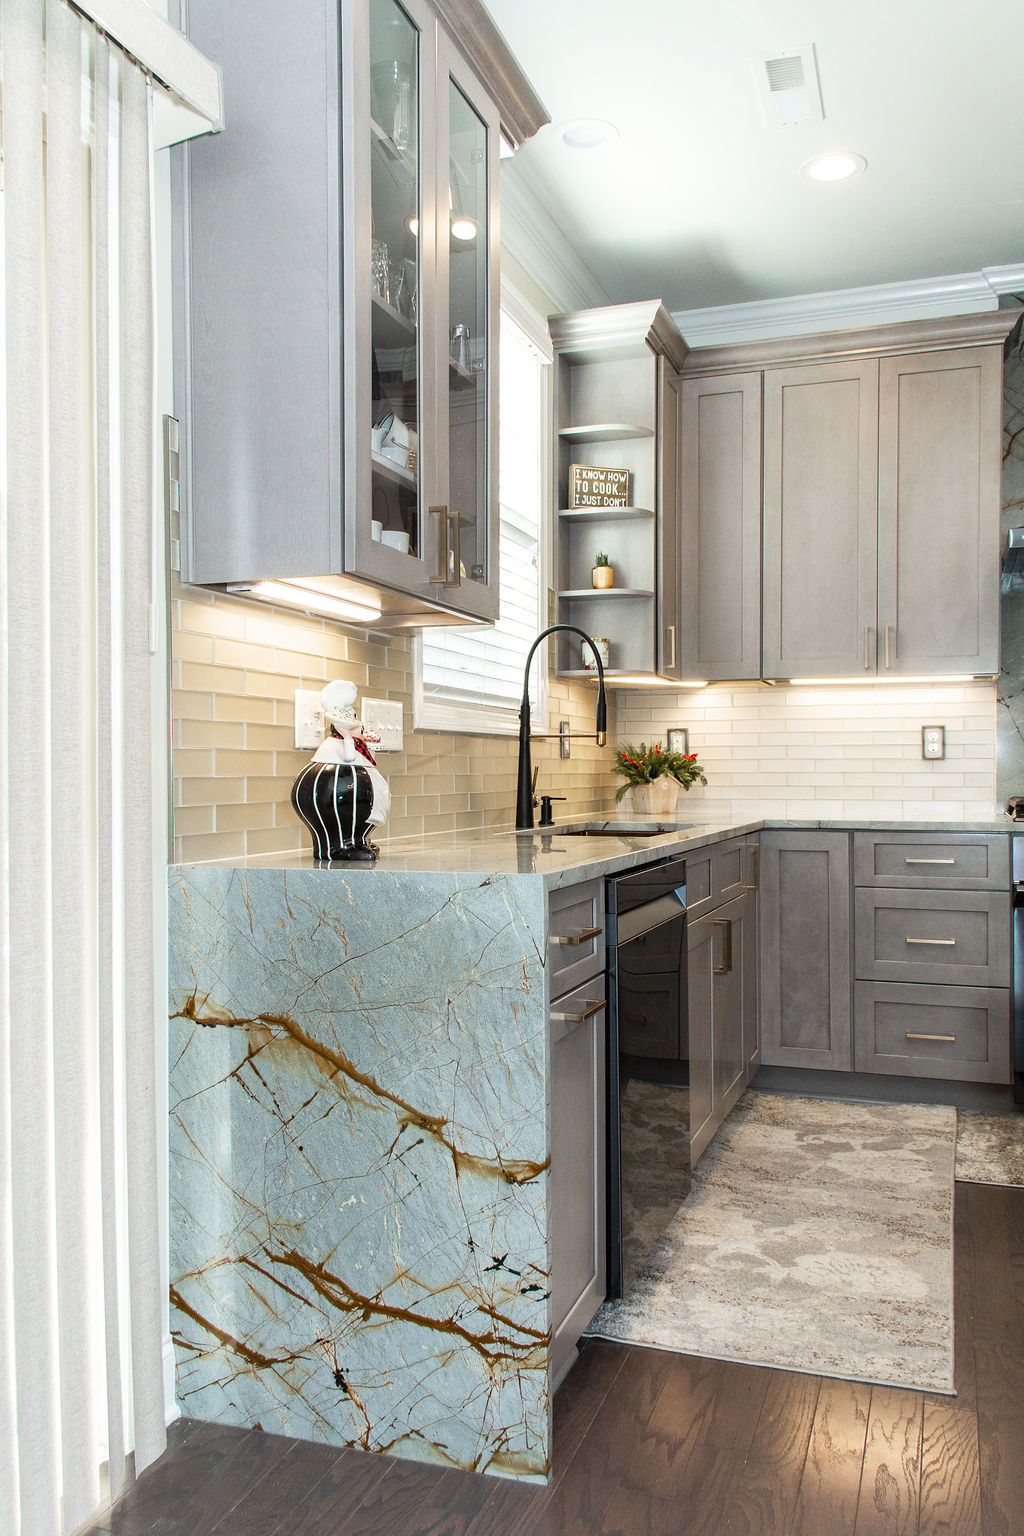 A custom waterfall edge with Blue Roma Quartzite